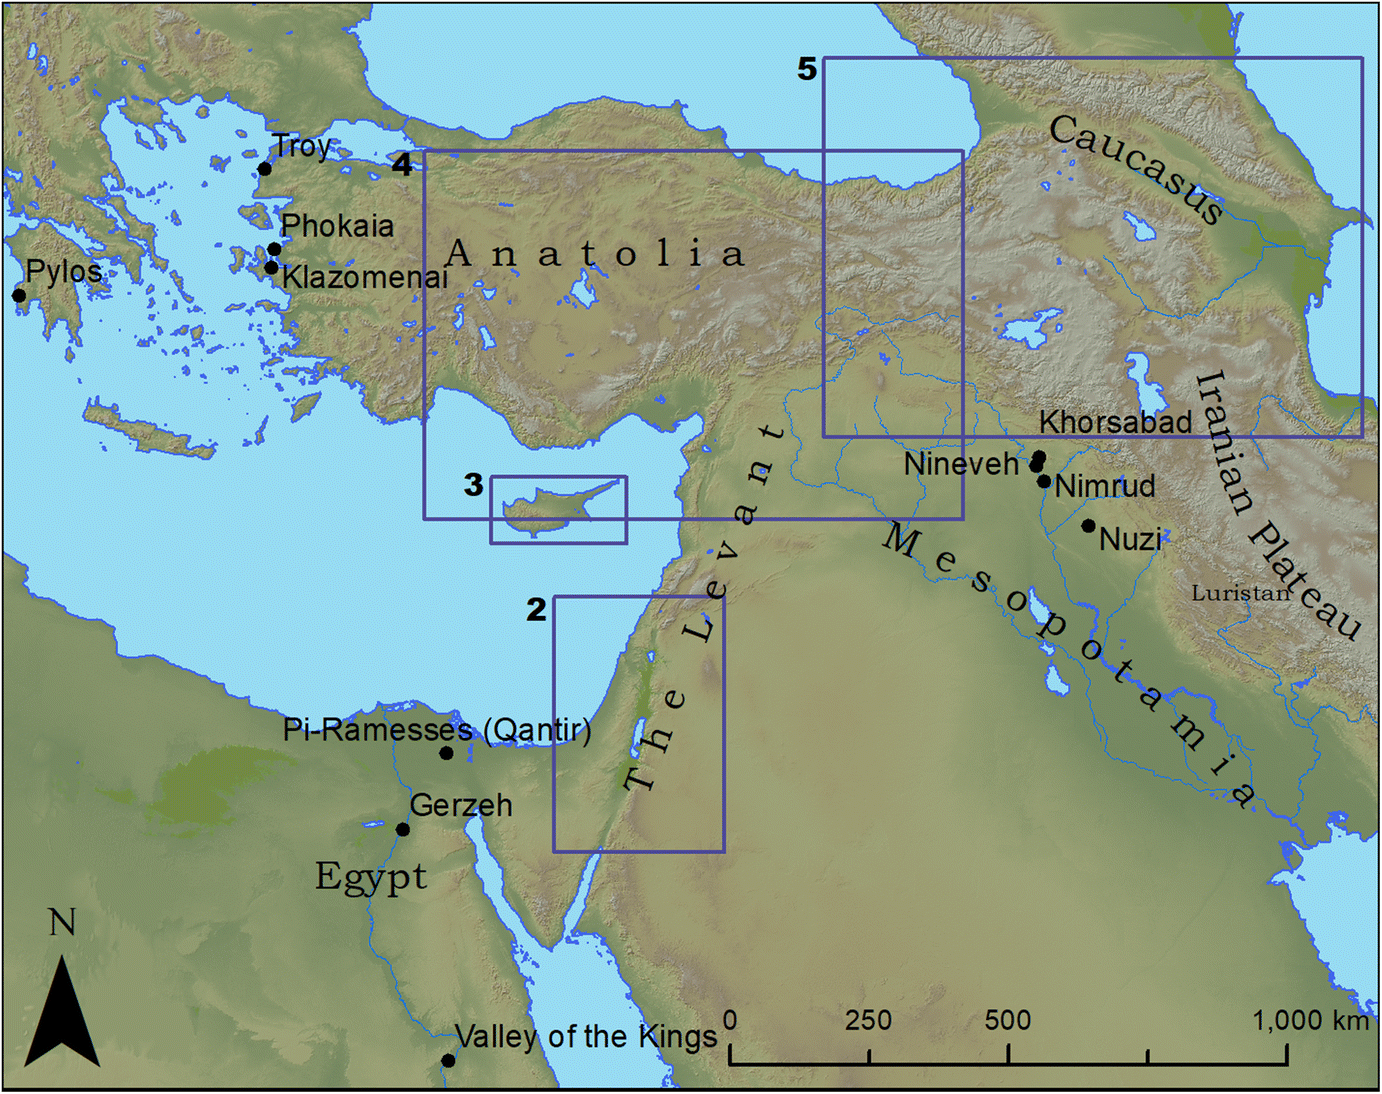 The Innovation and Adoption of Iron in the Ancient Near East